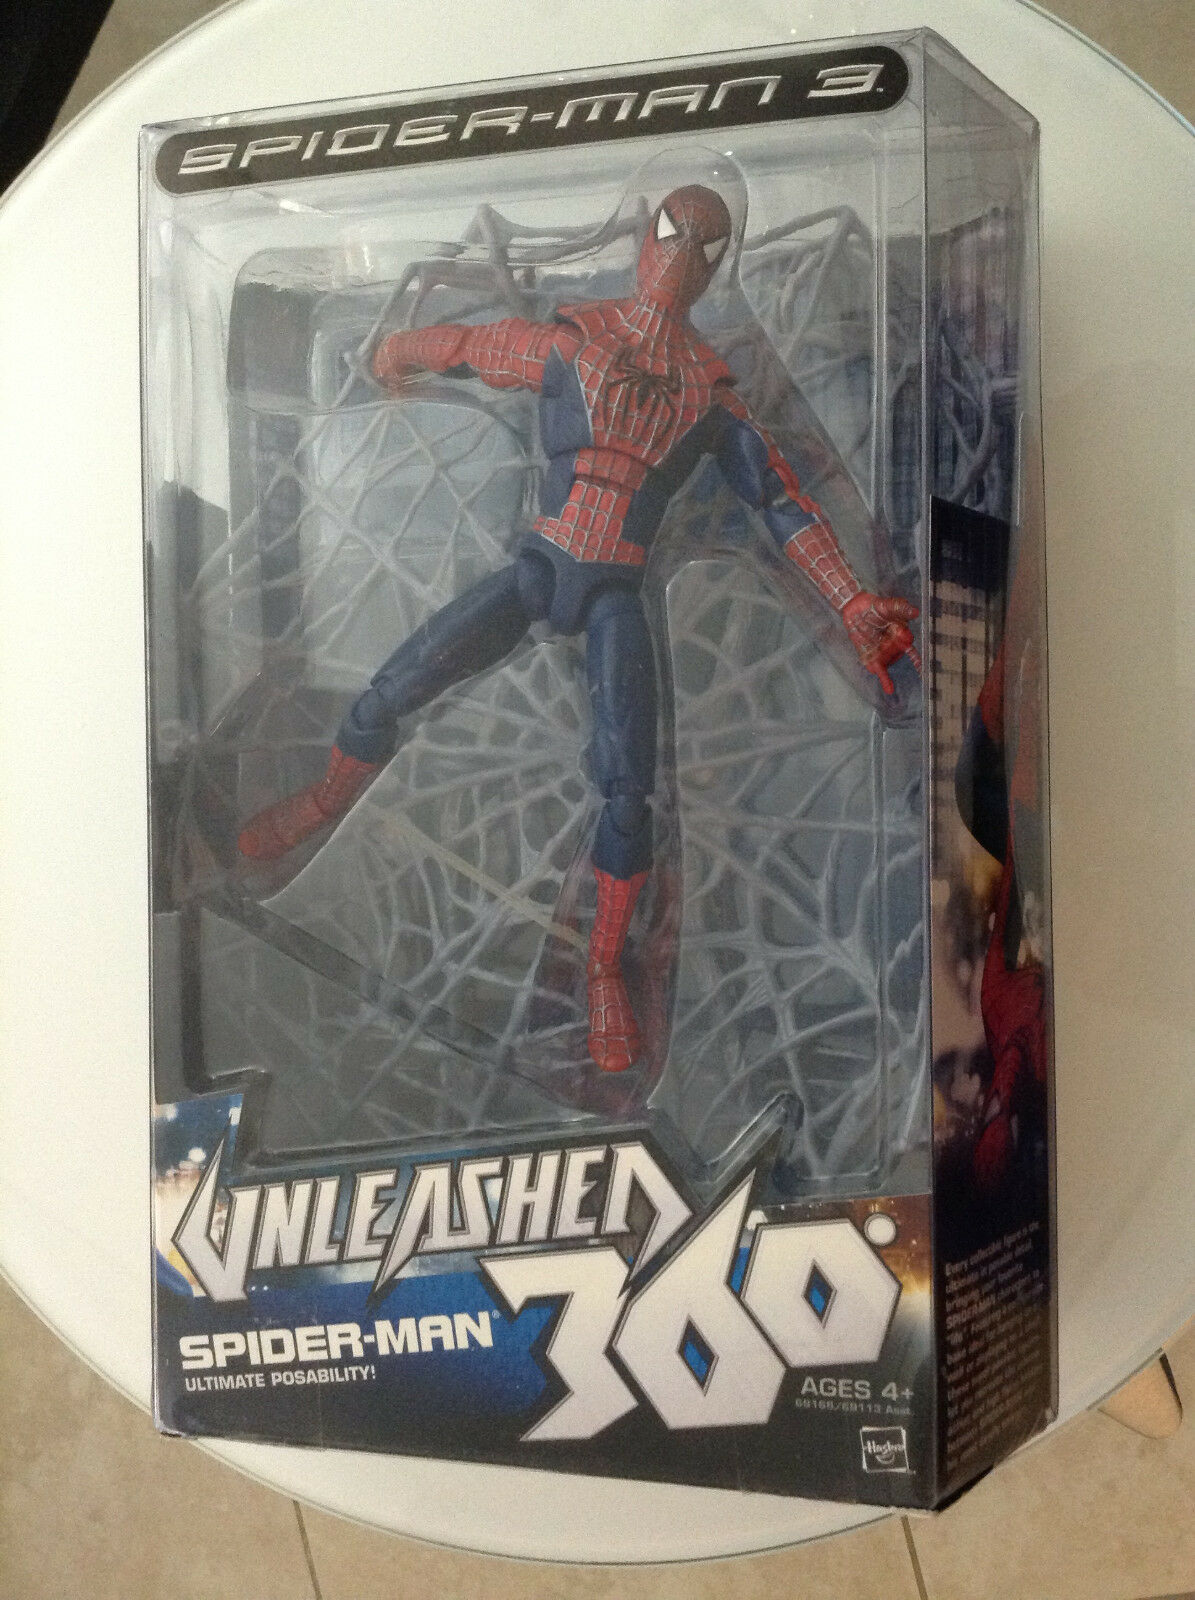 SPIDER-MAN 3 UNLEASHED 360 SPIDER-MAN ULTIMATE POSABILITY 8